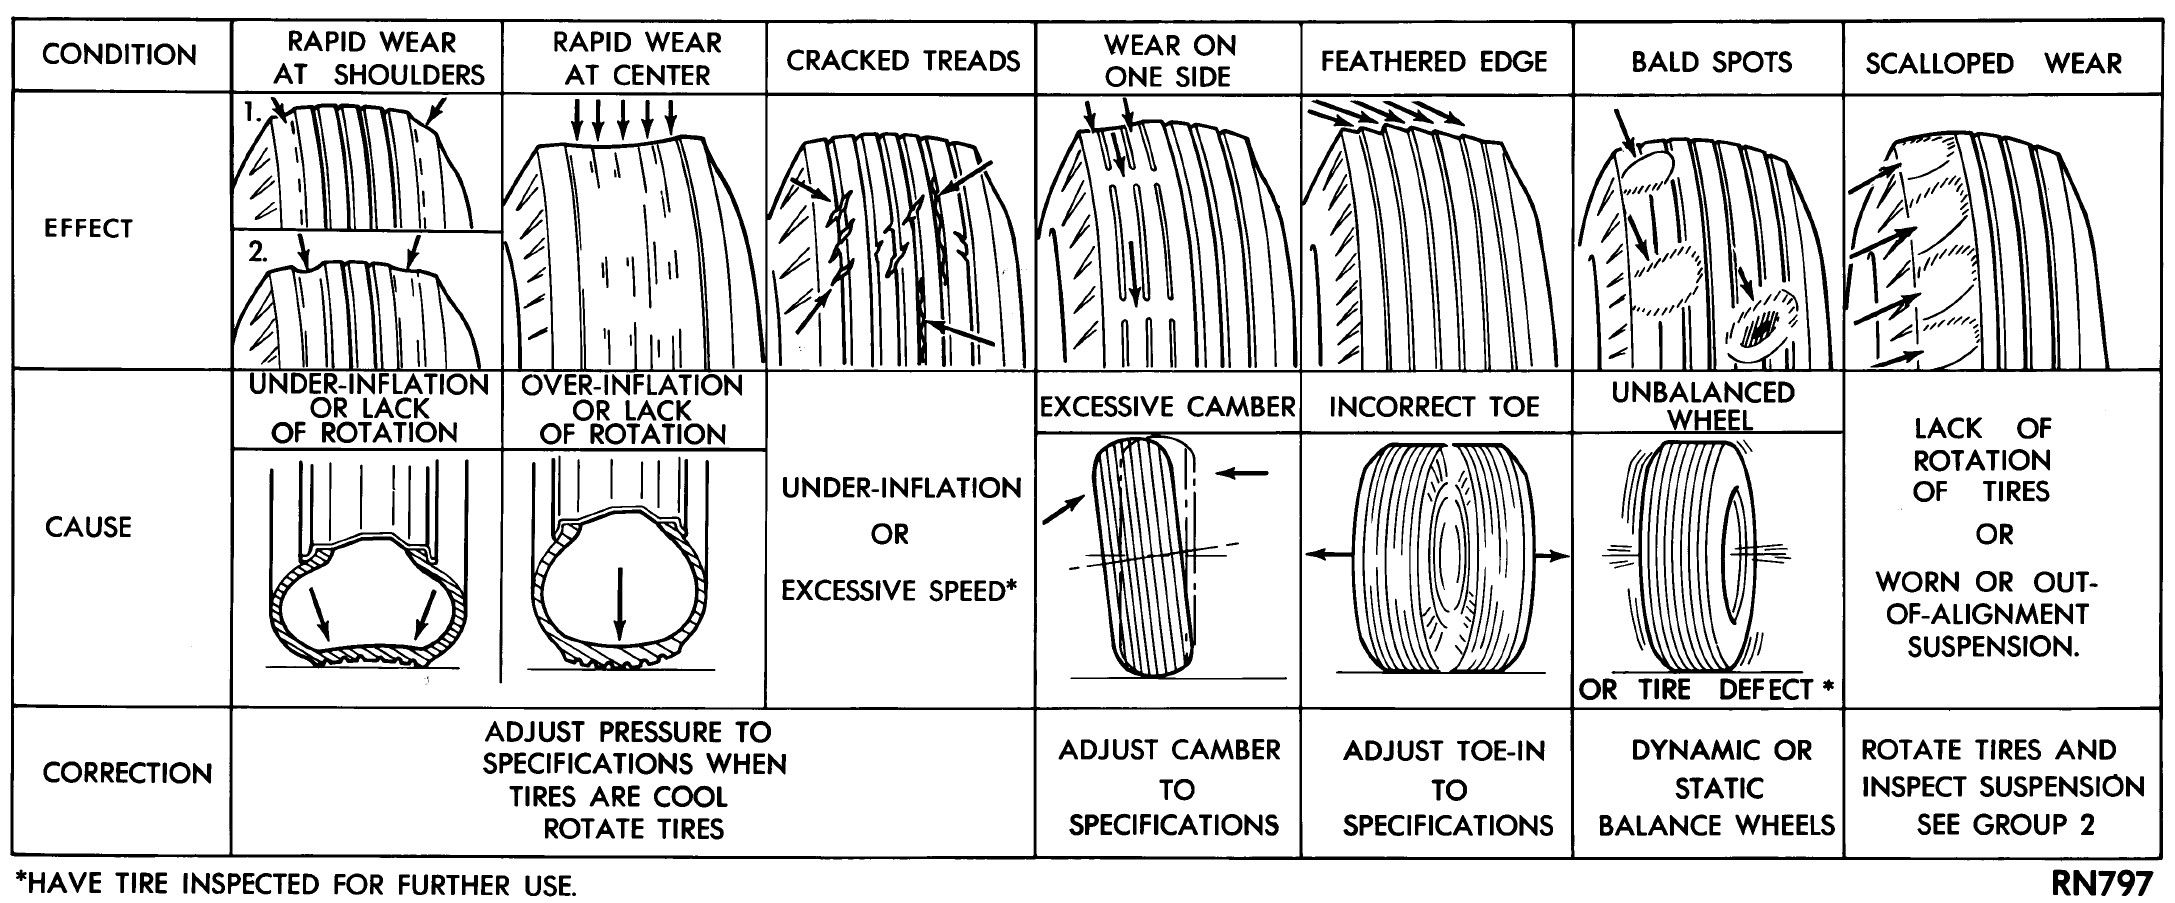 Good To Know Tire Wear Cause And Effect Chart With Solutions Front End Alignment Tire Alignment Repair Guide